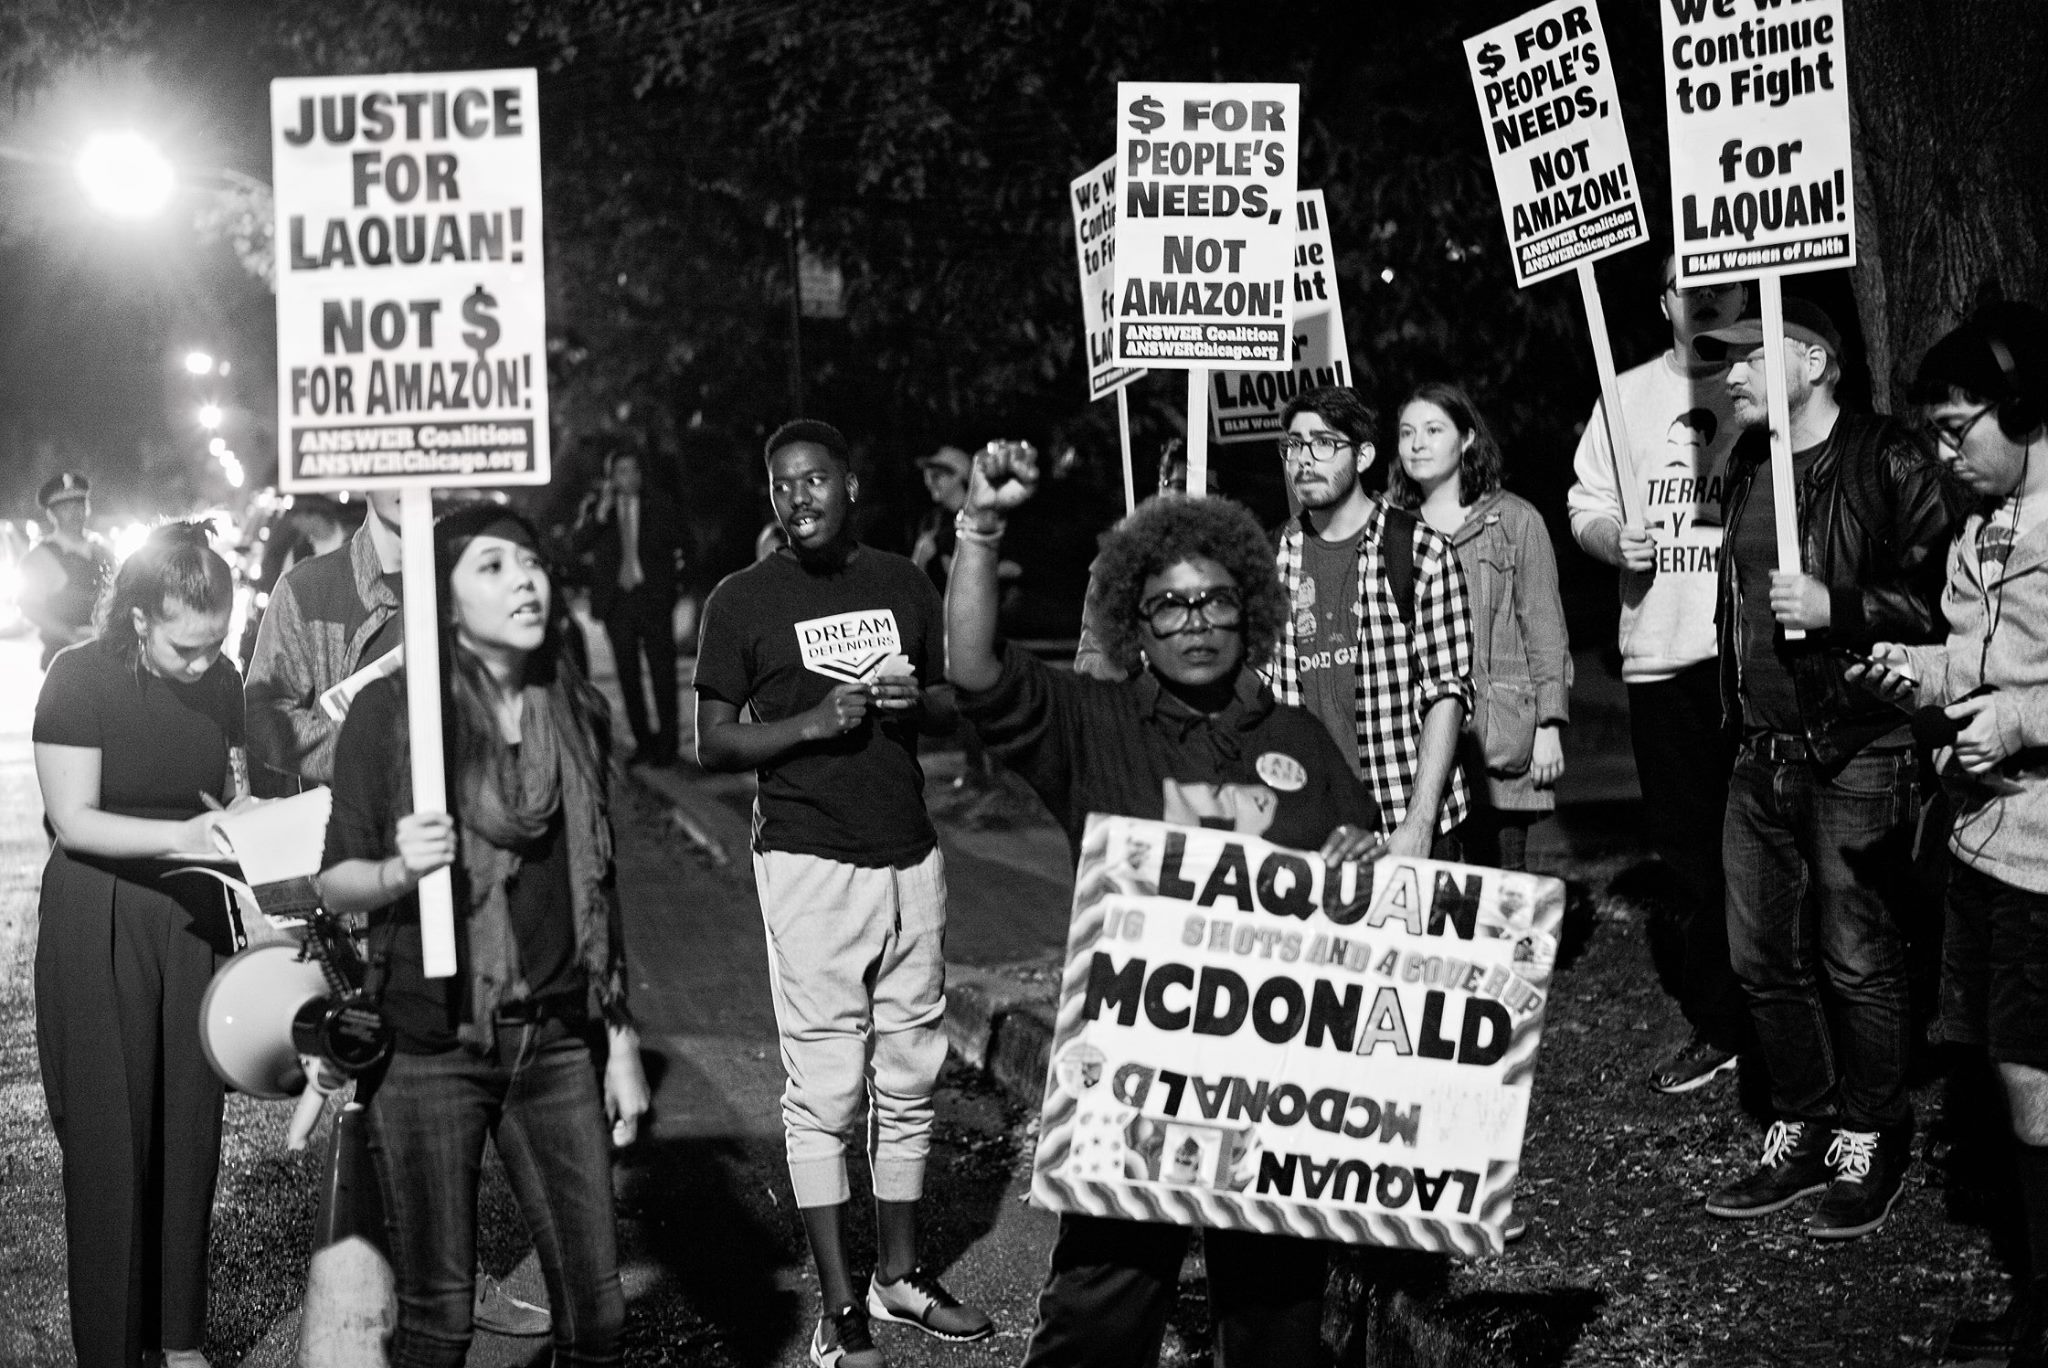 Photo of Chicago Demands Justice for Laquan, Not Money for Amazon